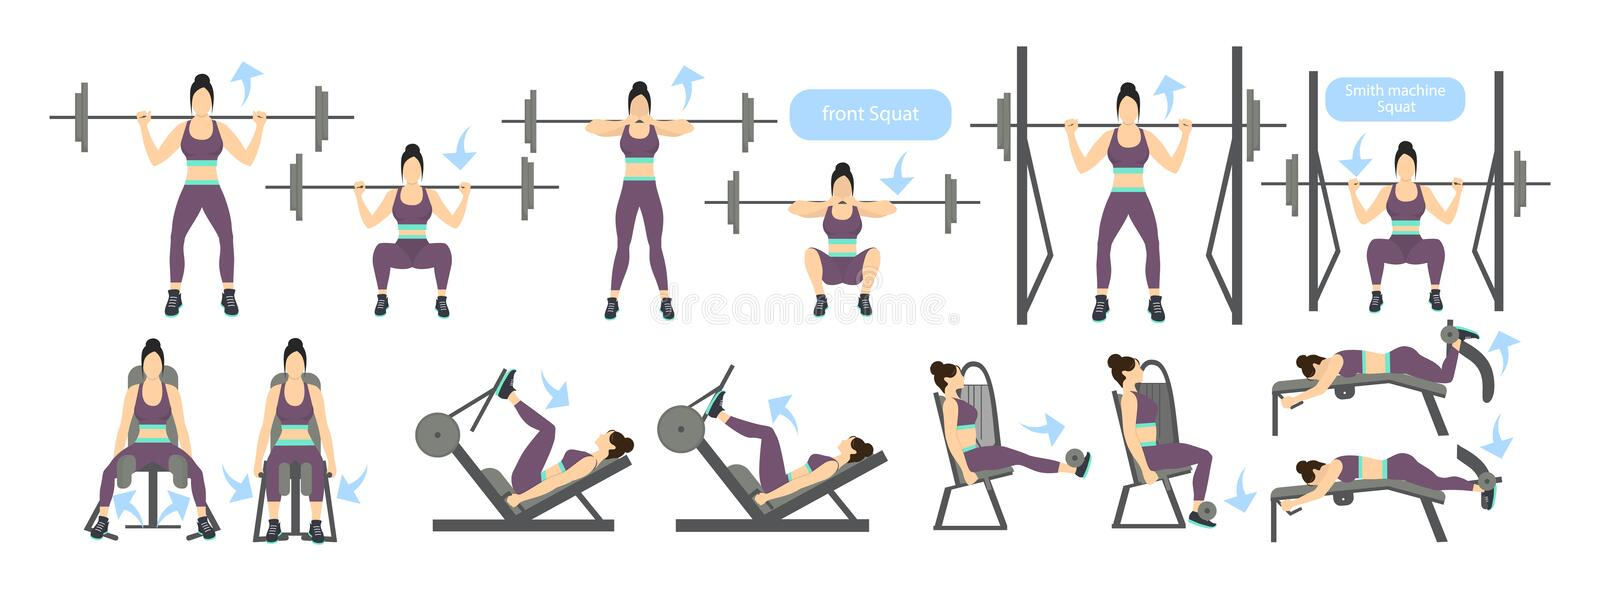 Legs workout with machines. royalty free illustration